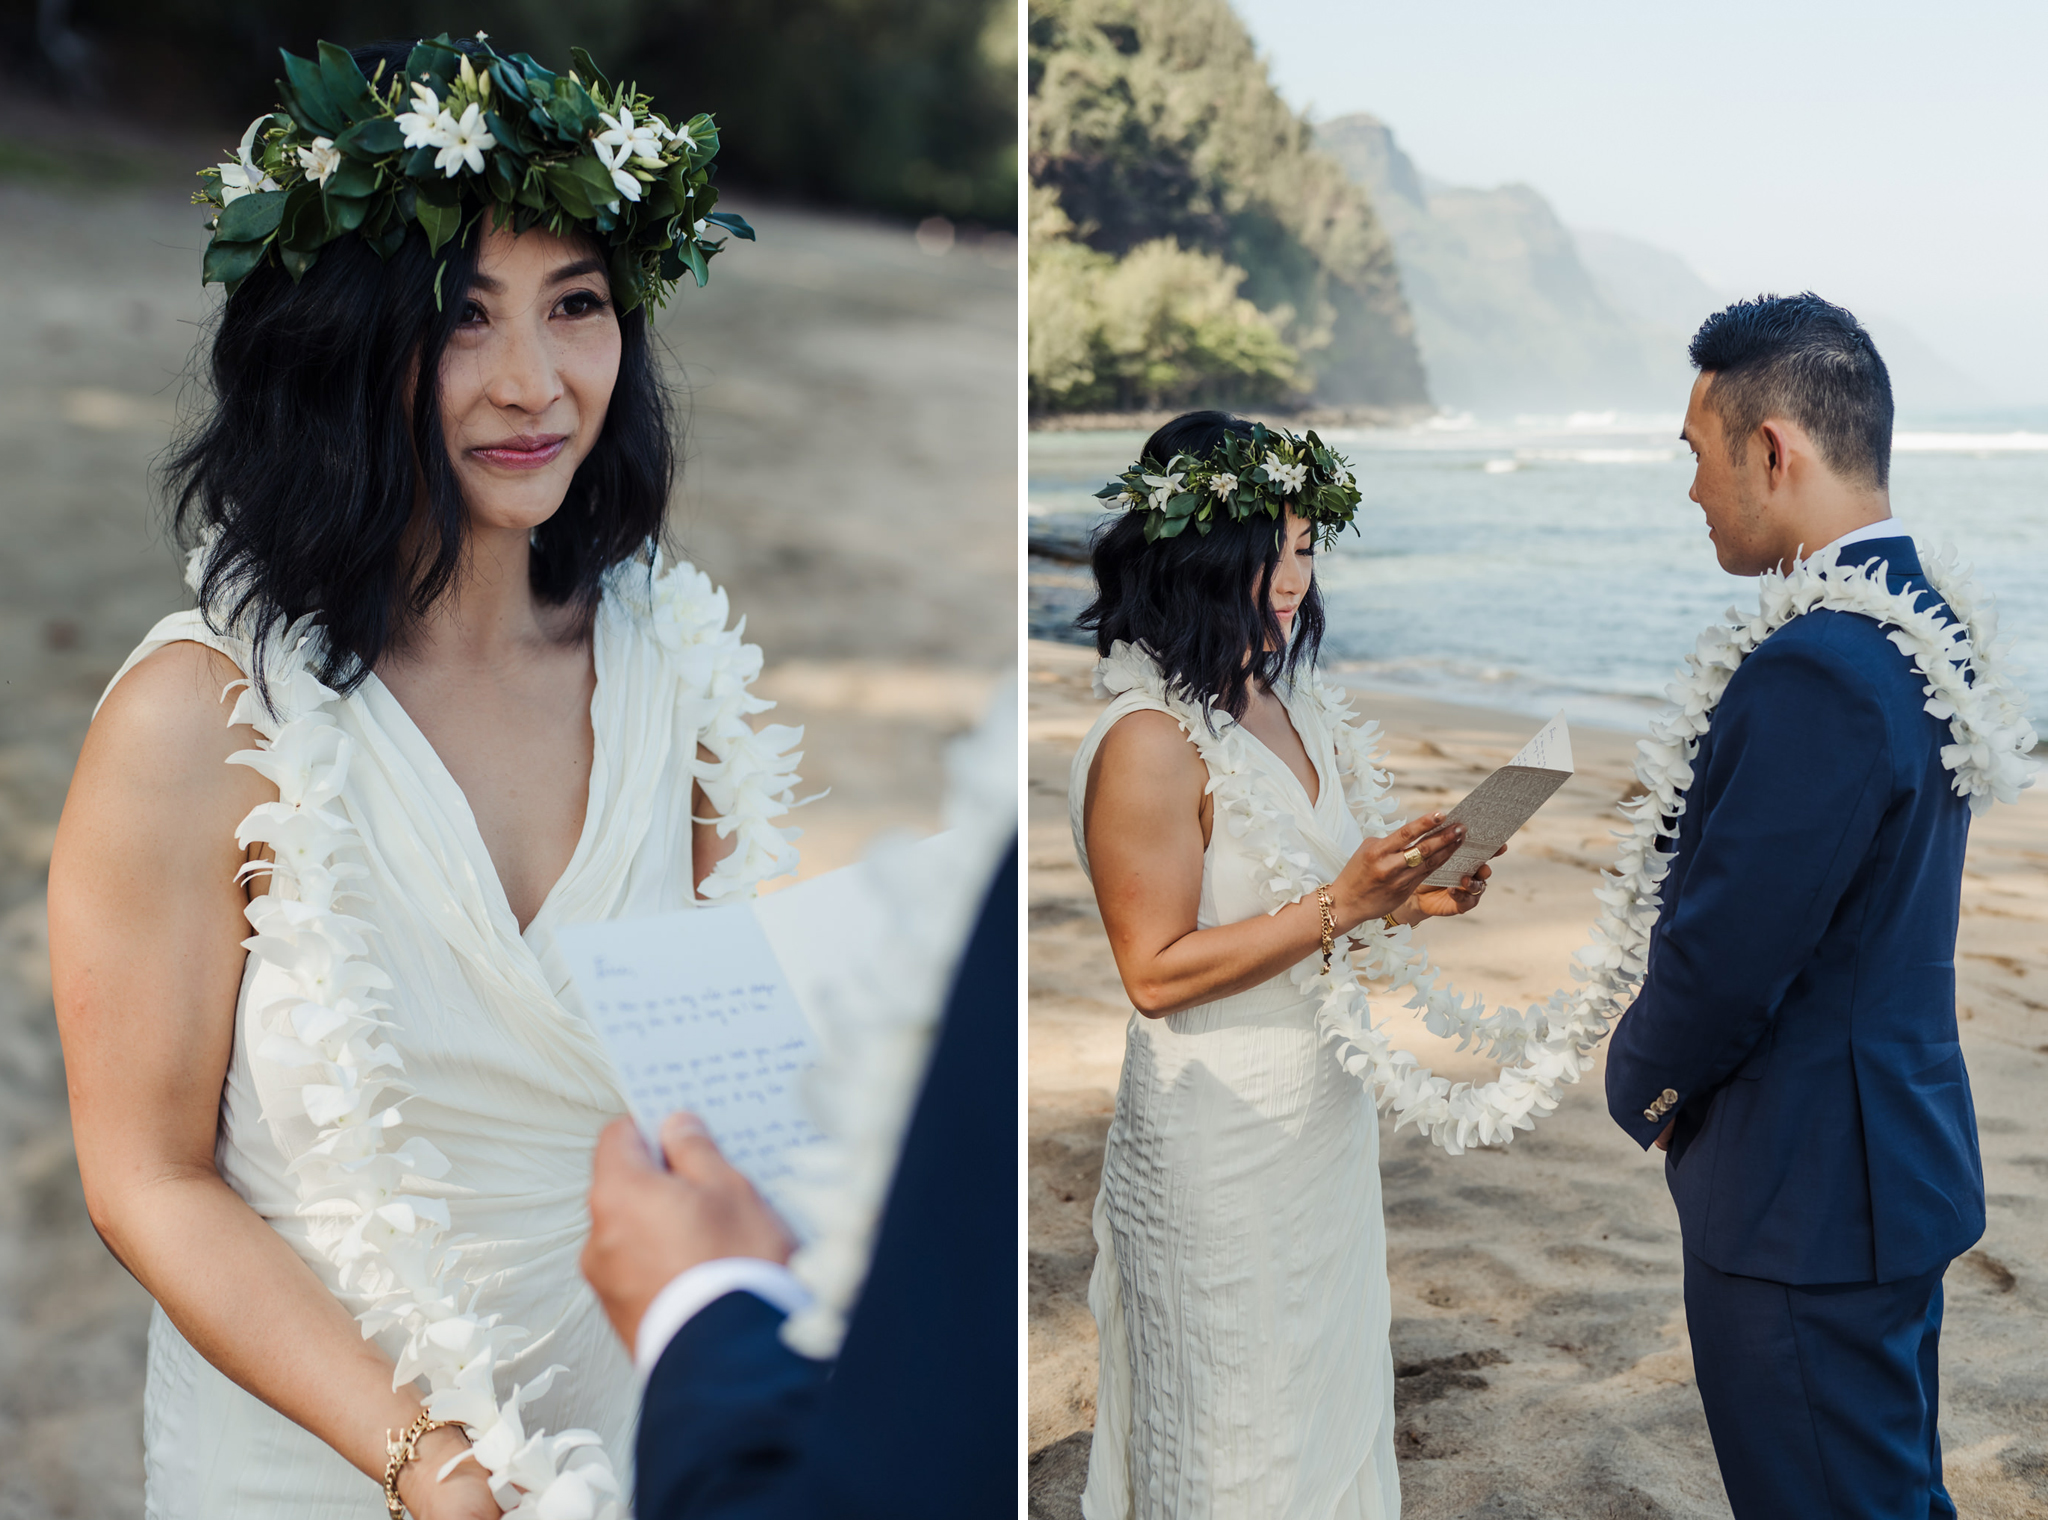 emotional bride while groom reads vows in beach ceremony